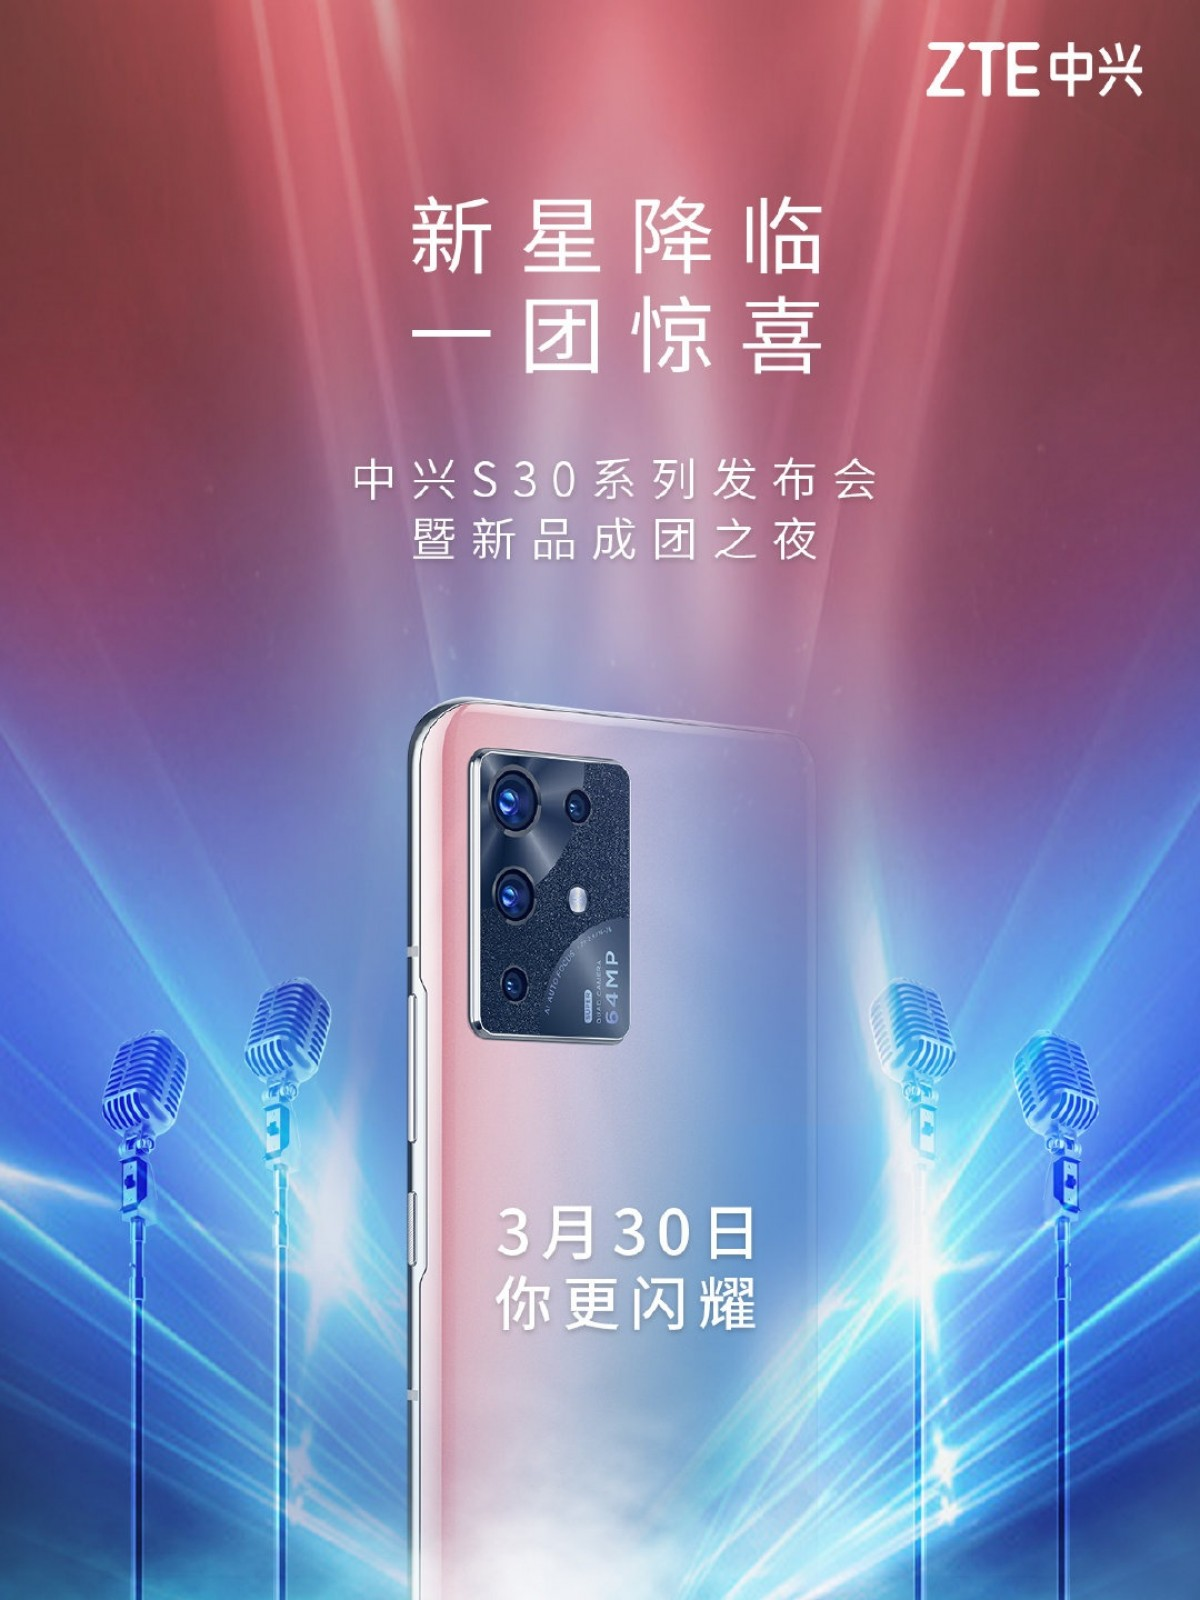 ZTE S30 Pro to arrive on March 30